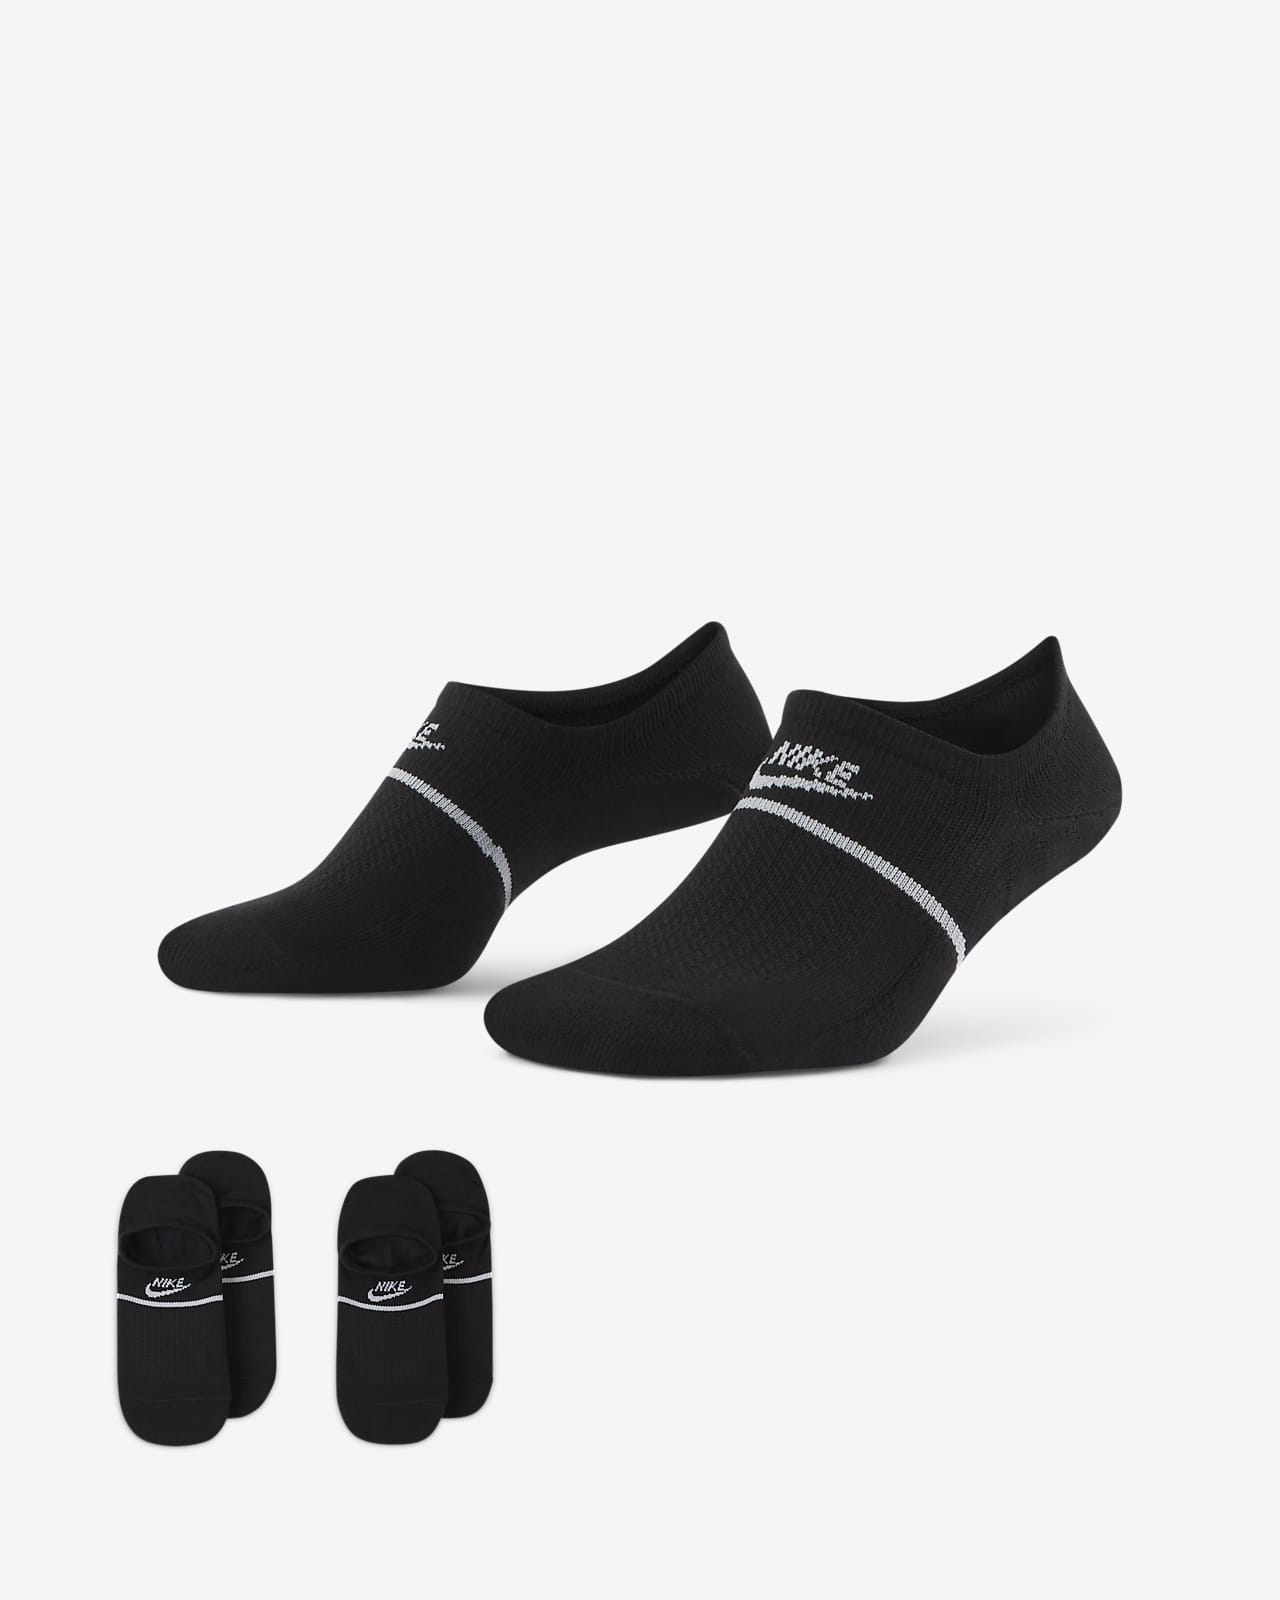 Nike SNKR Sox No-Show Footies (2 Pairs)